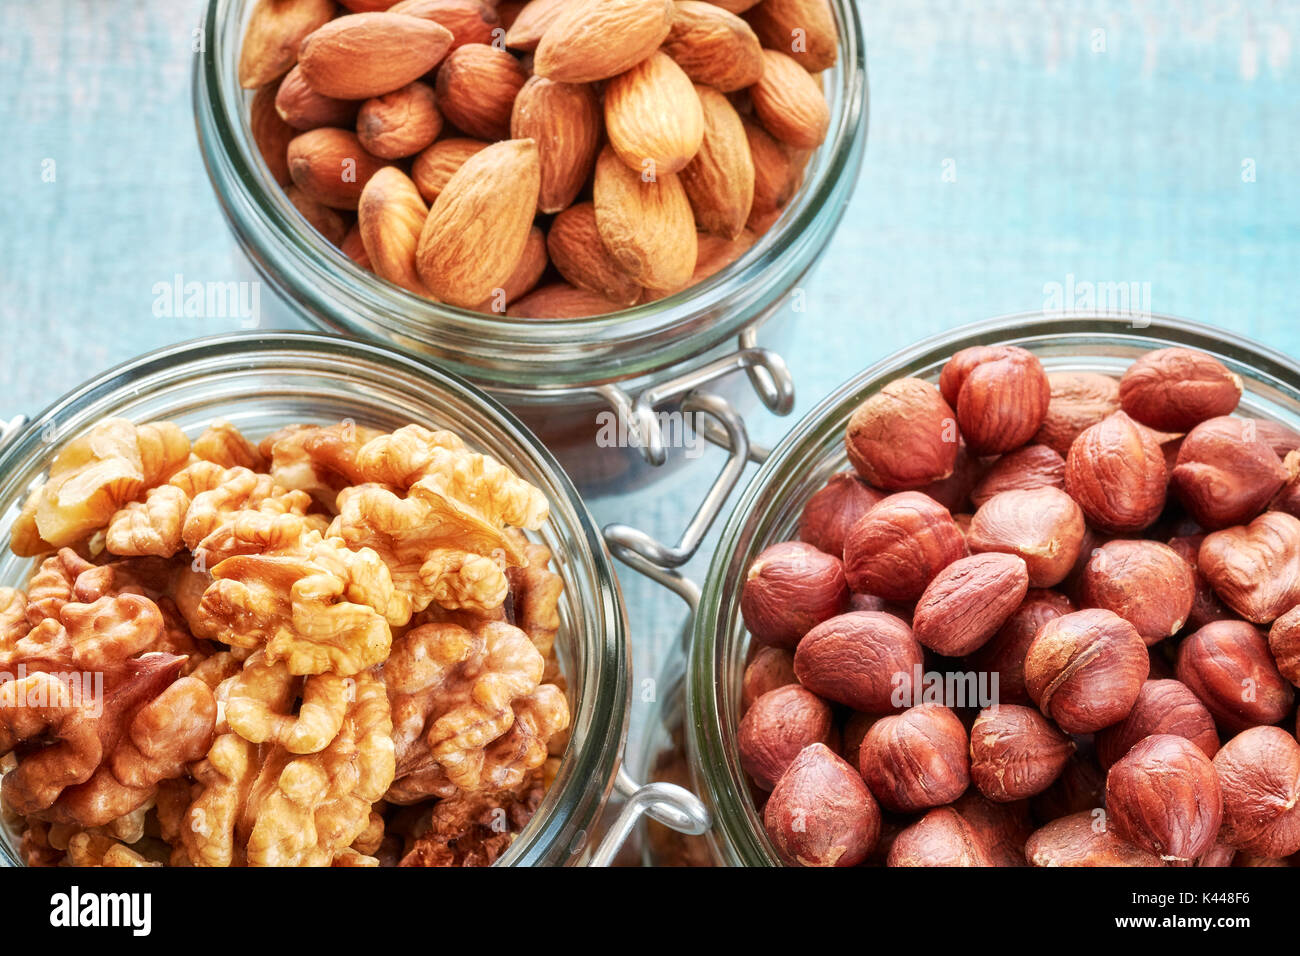 Walnuts, hazelnuts and almonds in jars on a rustic wooden background. - Stock Image